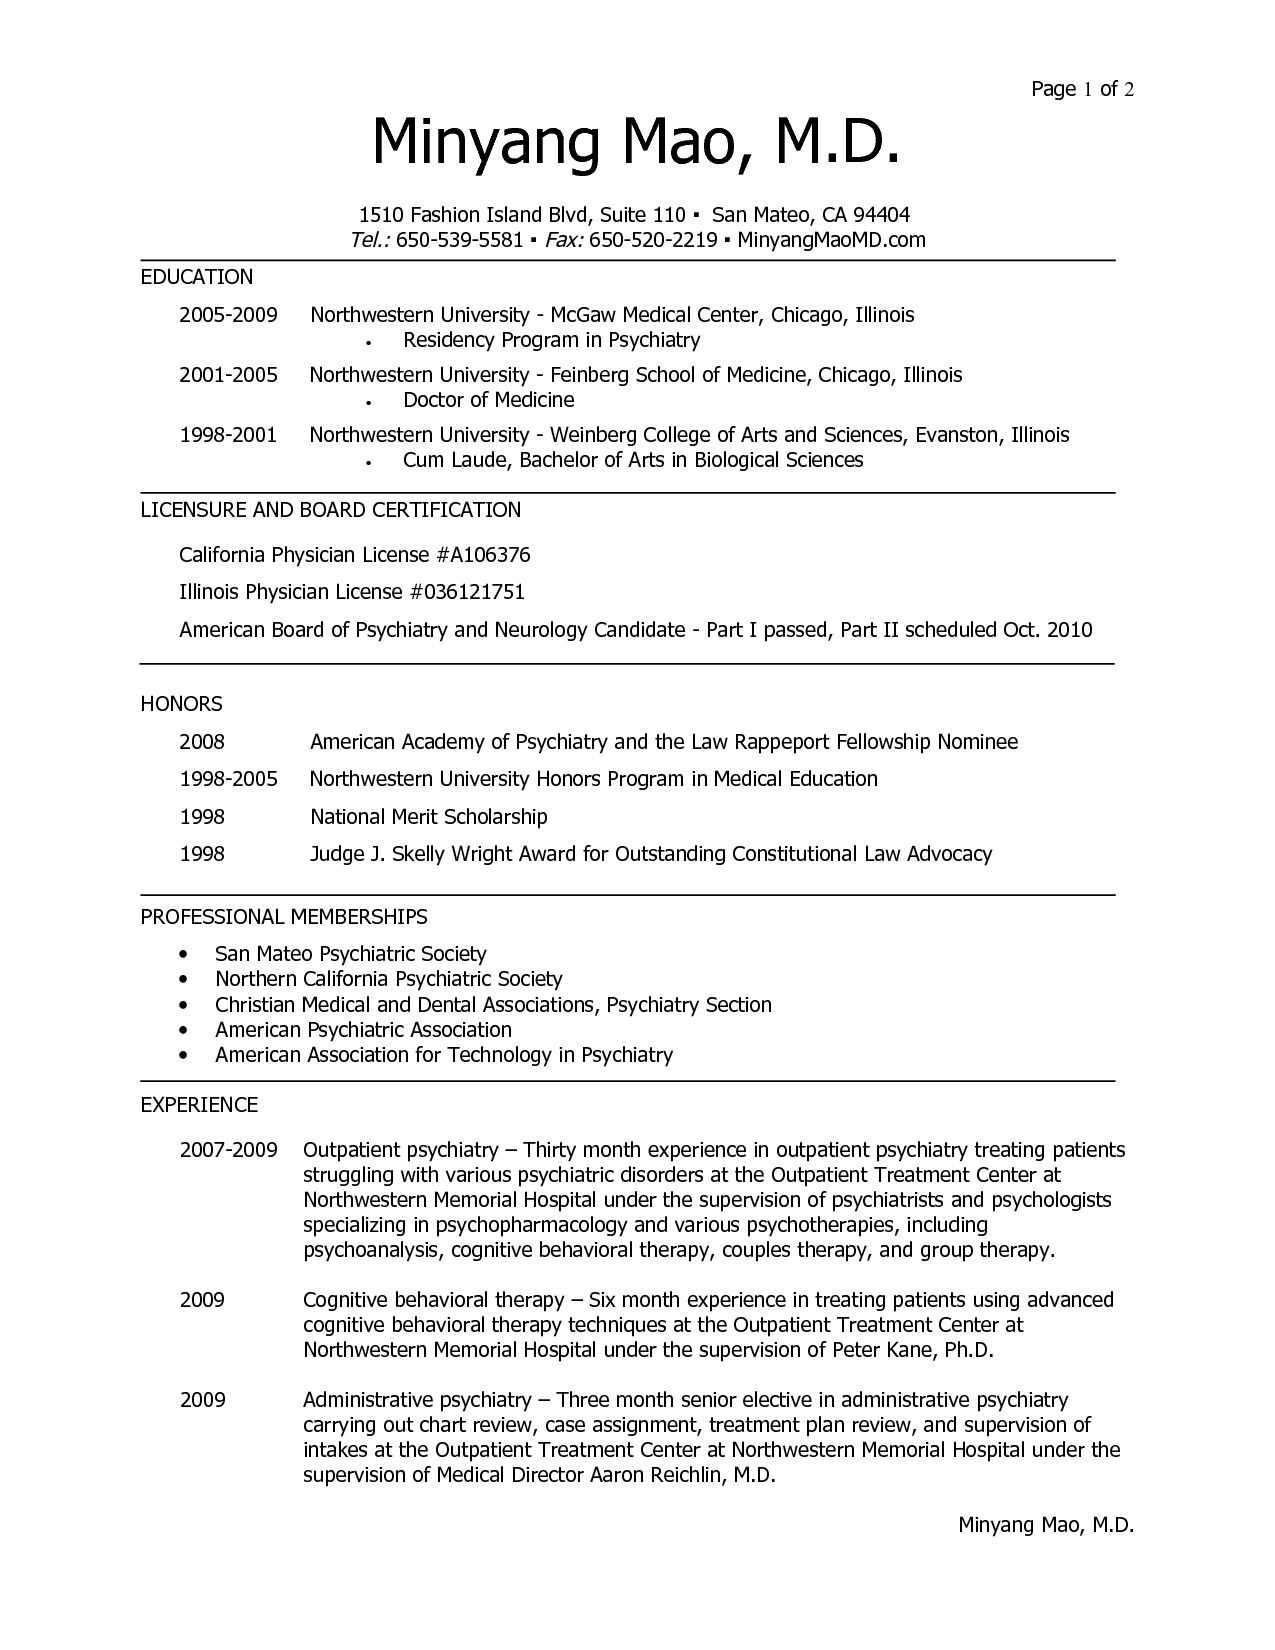 Resume for Med School - Cv Template Medical School Cv Template Pinterest